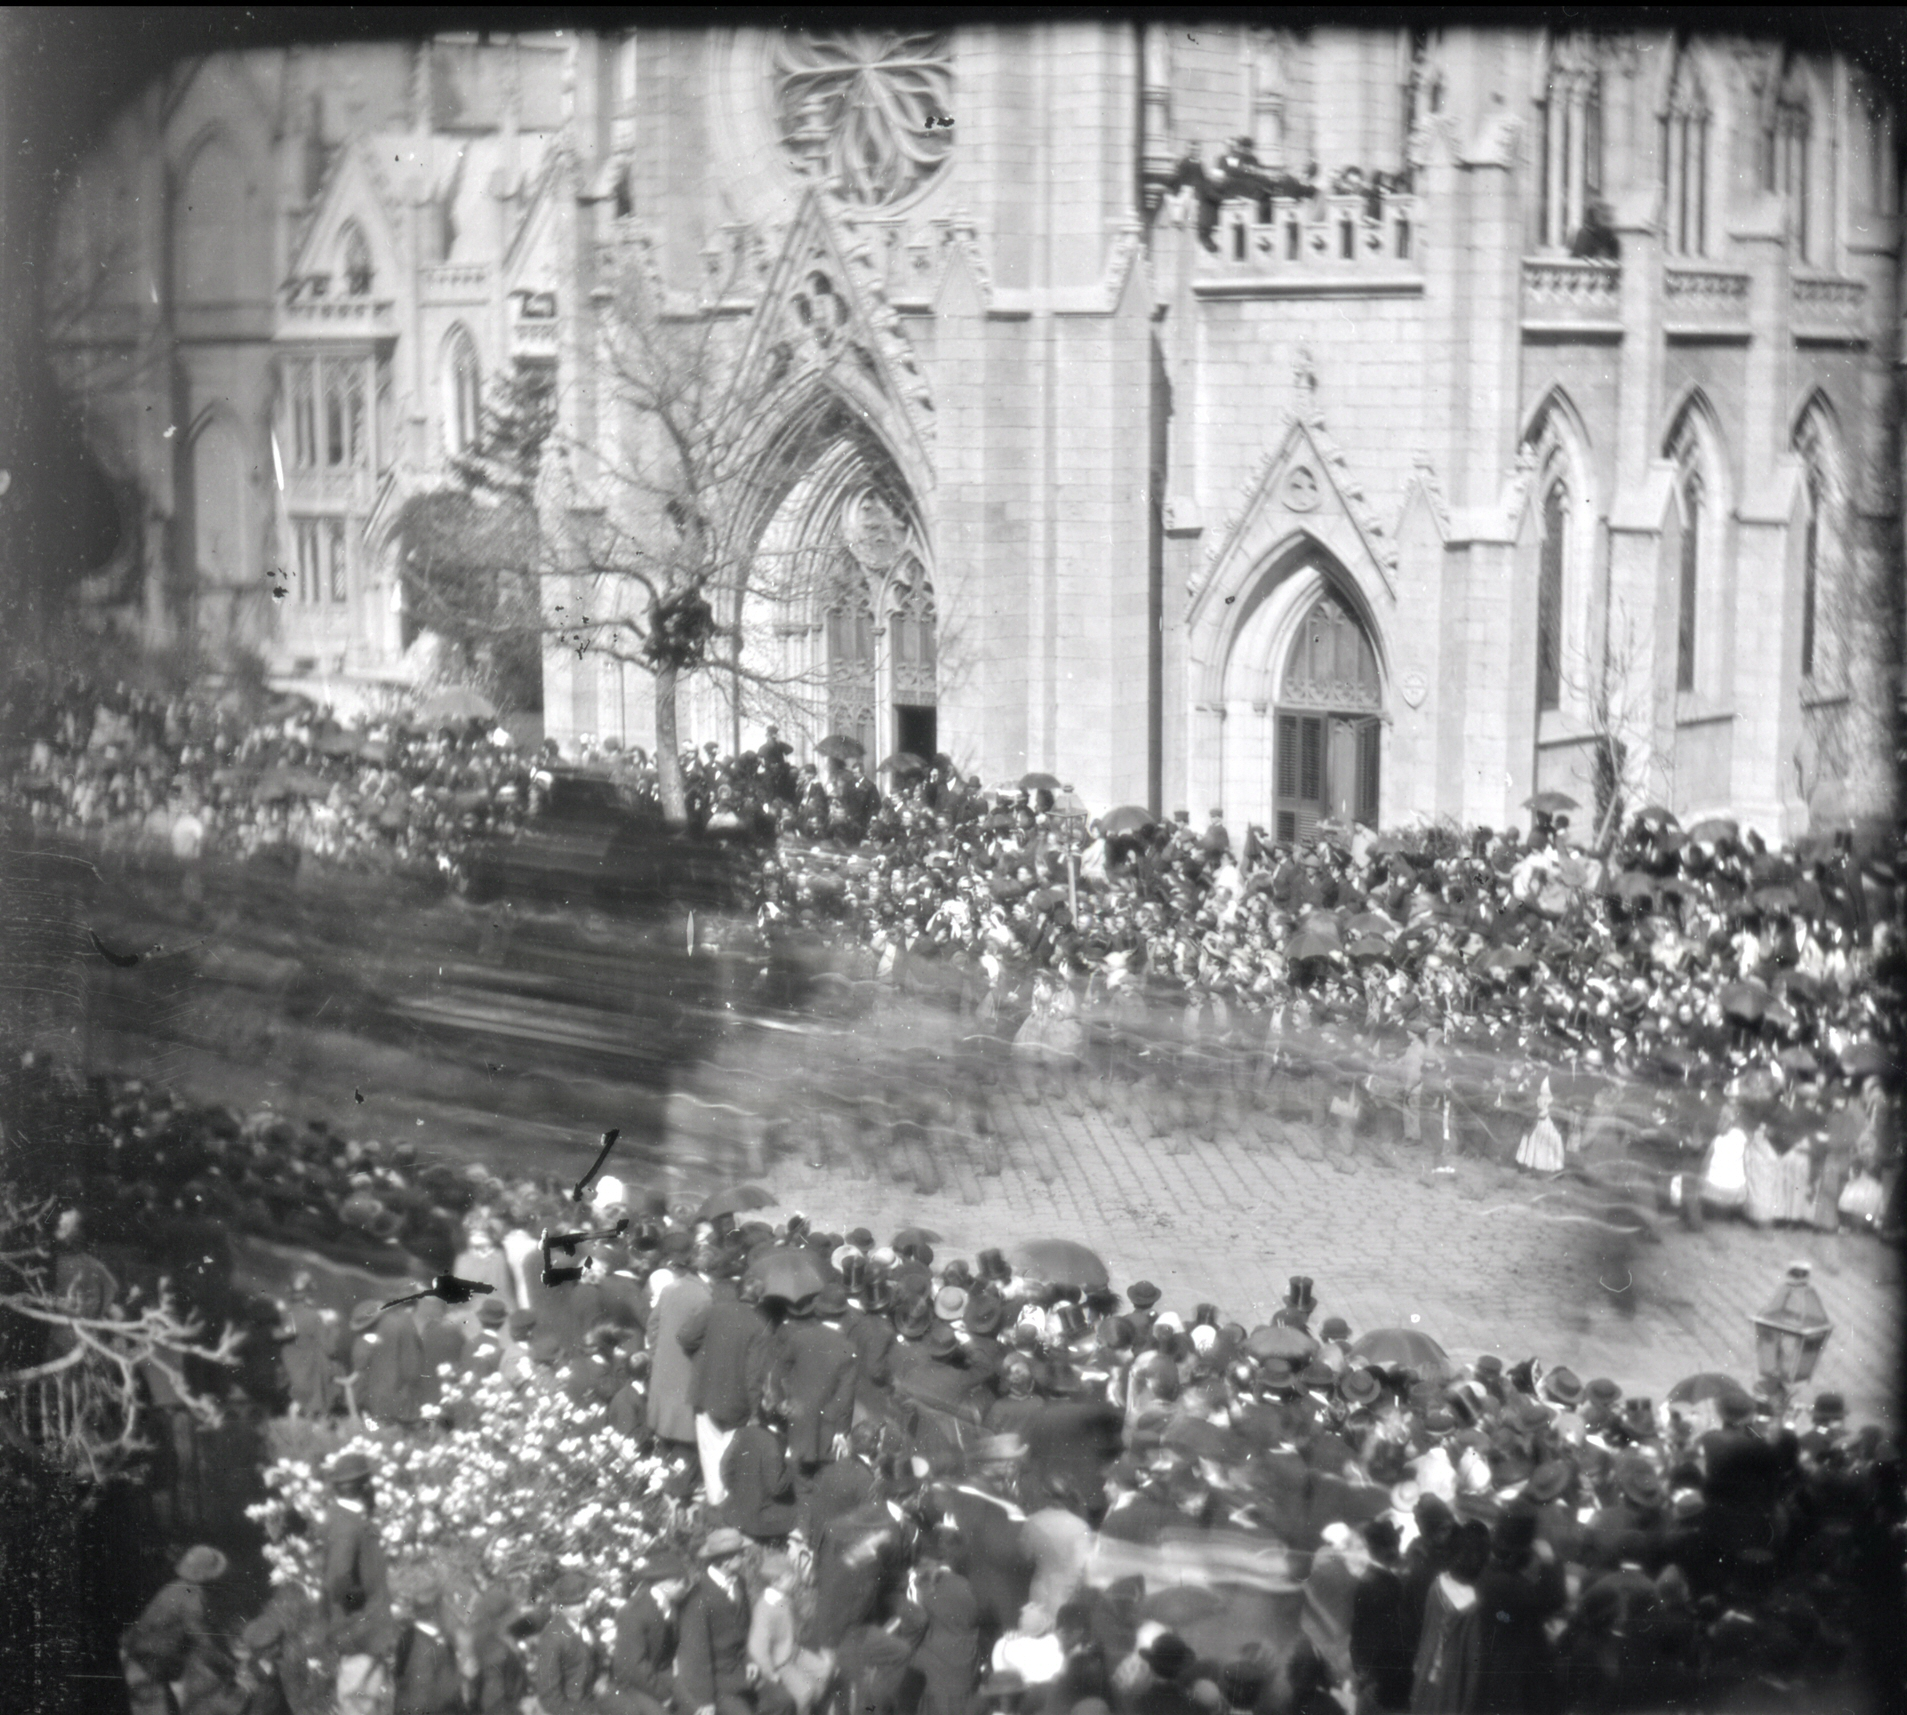 Second image (again, click to super-size). A procession passes. What is the dark blurred object at the left?